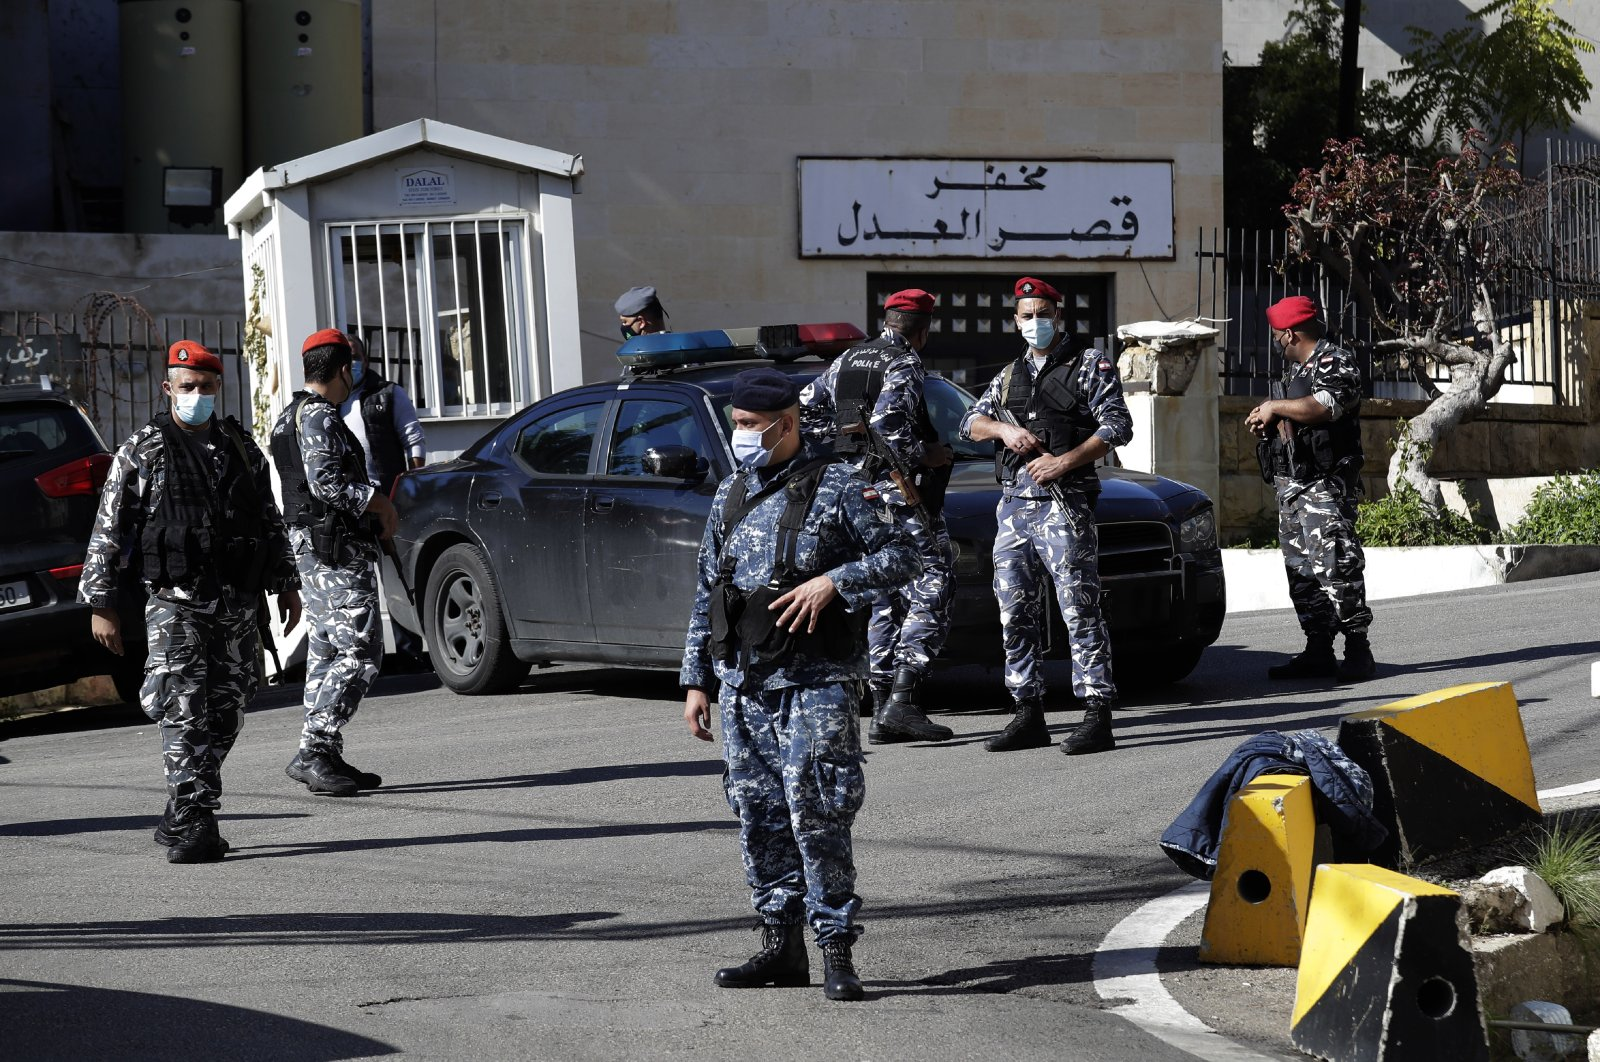 Lebanese policemen stand guard a detention center of Baabda courthouse compound were nearly 70 inmates broke out of a prison early Saturday after smashing their cell doors and attacking prison guards, in the Beirut southeastern suburb of Baabda, Lebanon, Saturday, Nov. 21, 2020. (AP Photo)